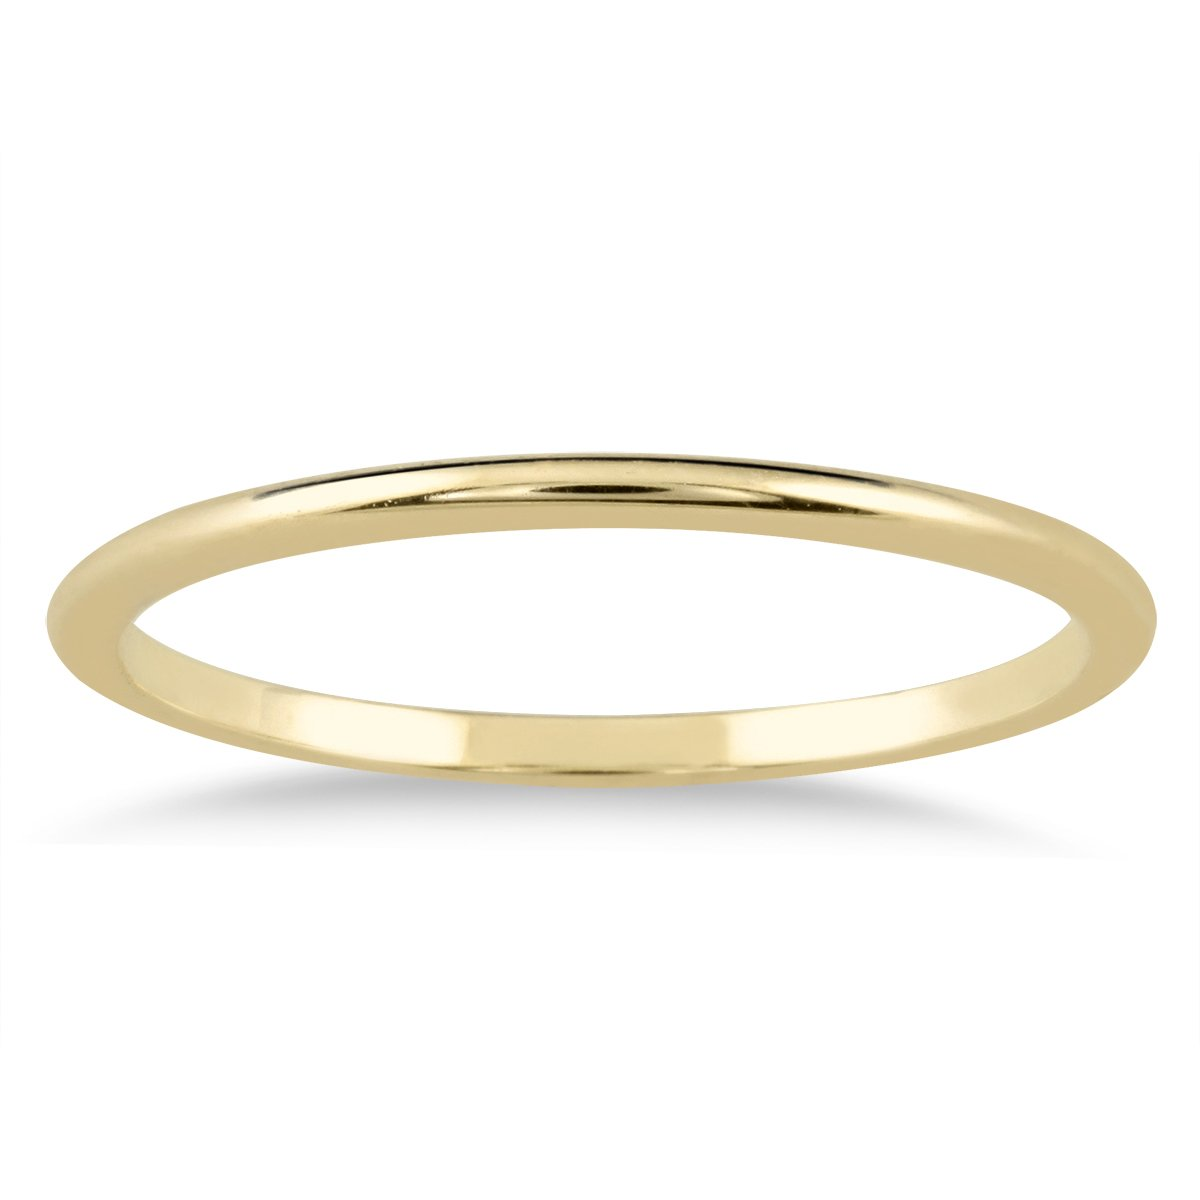 1mm Thin Domed Wedding Band in 14K Yellow Gold Size 8